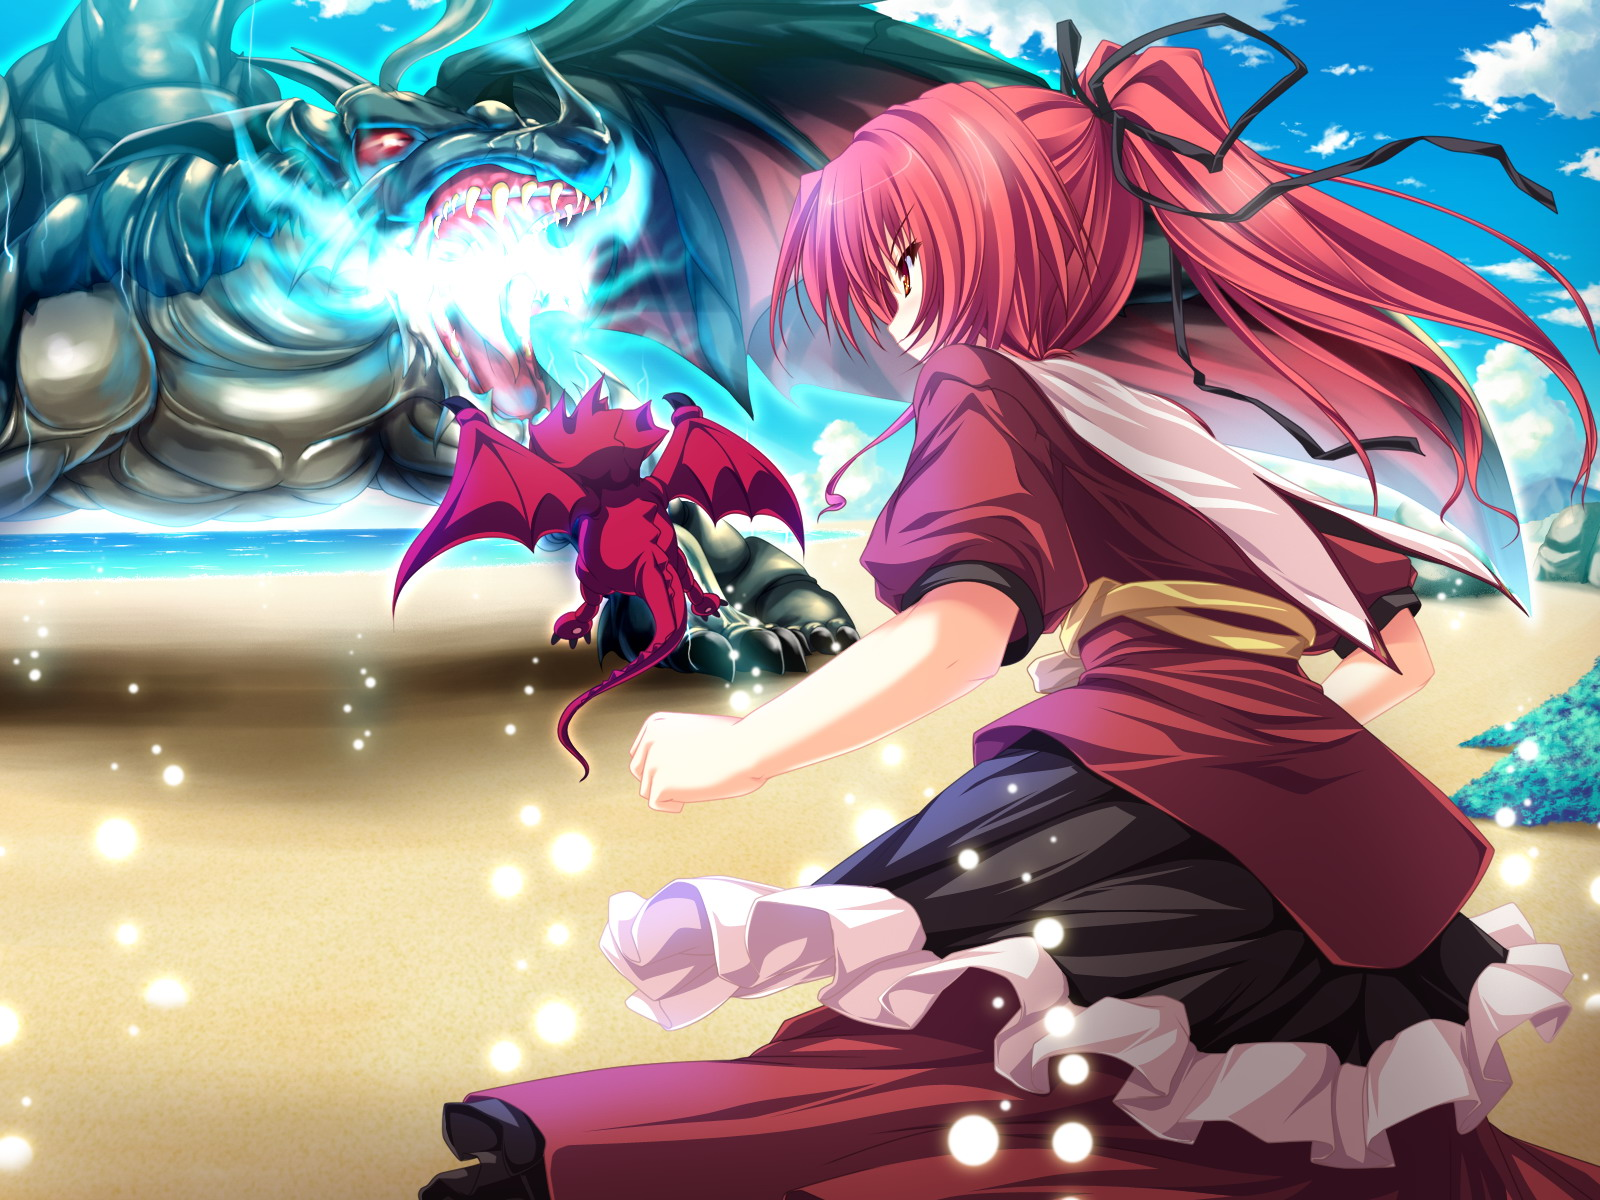 game_cg magus_tale ponytail red_hair seera_finis_victoria tenmaso